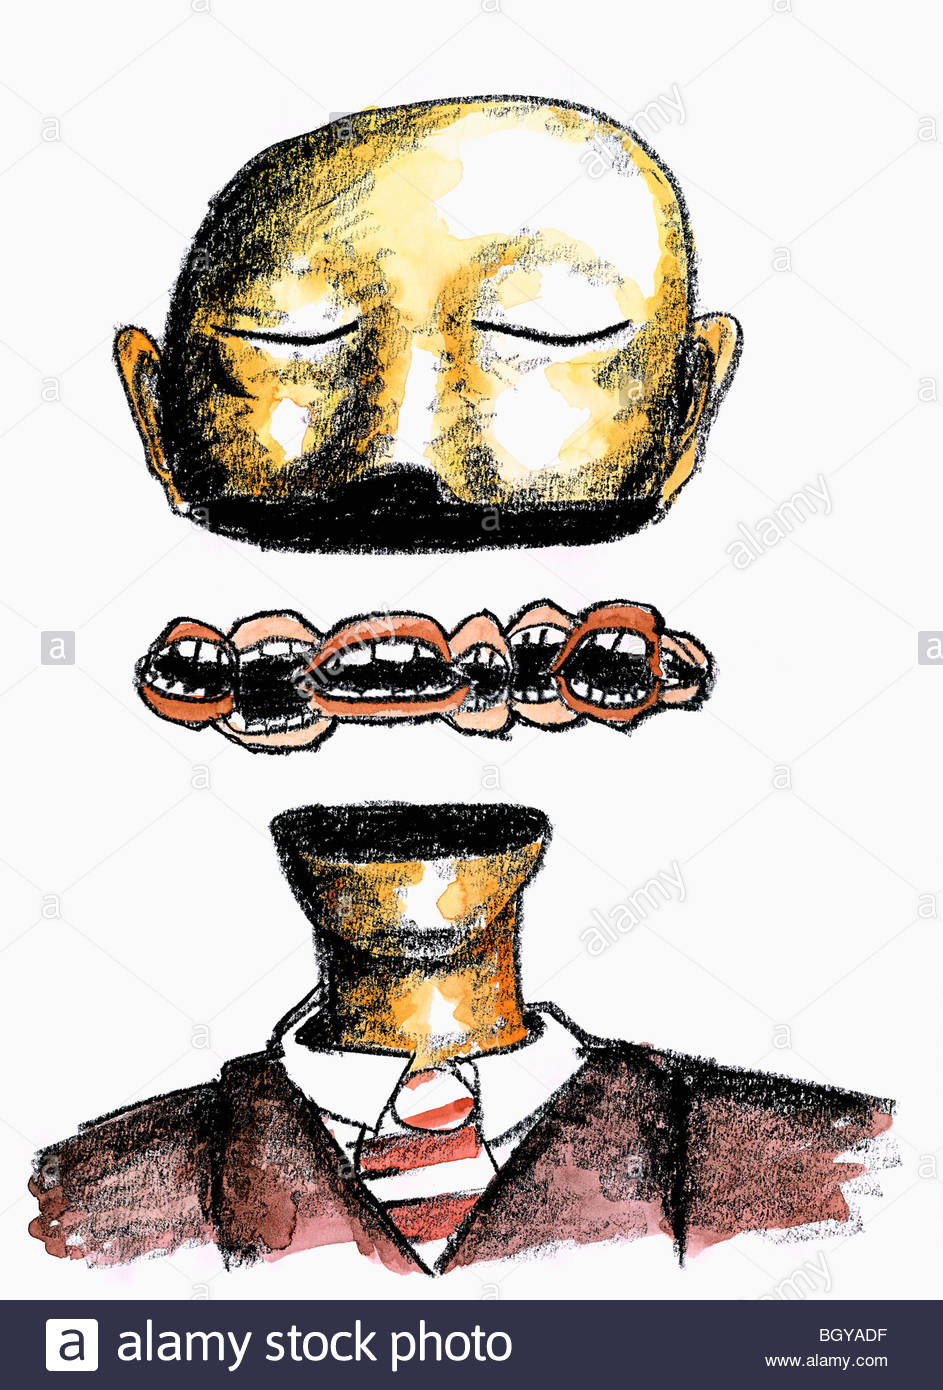 Man with separated head and many mouths - Stock Image